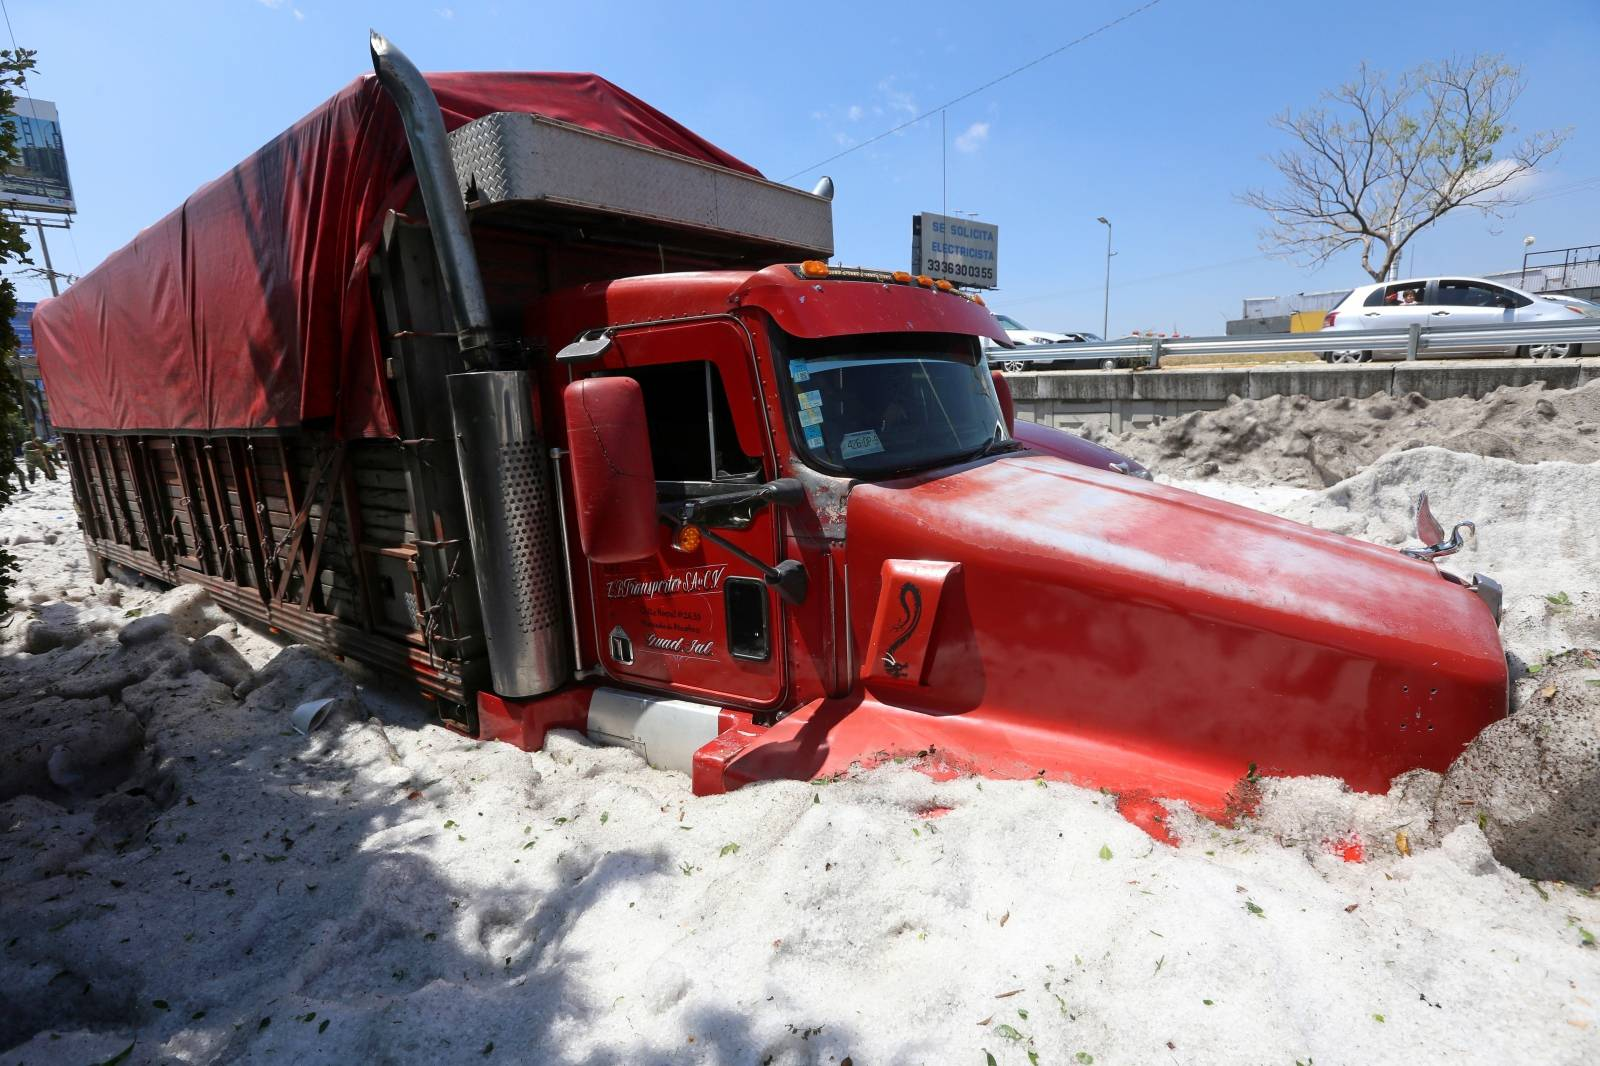 A truck is buried in ice after a heavy storm of rain and hail which  affected some areas of the city in Guadalajara